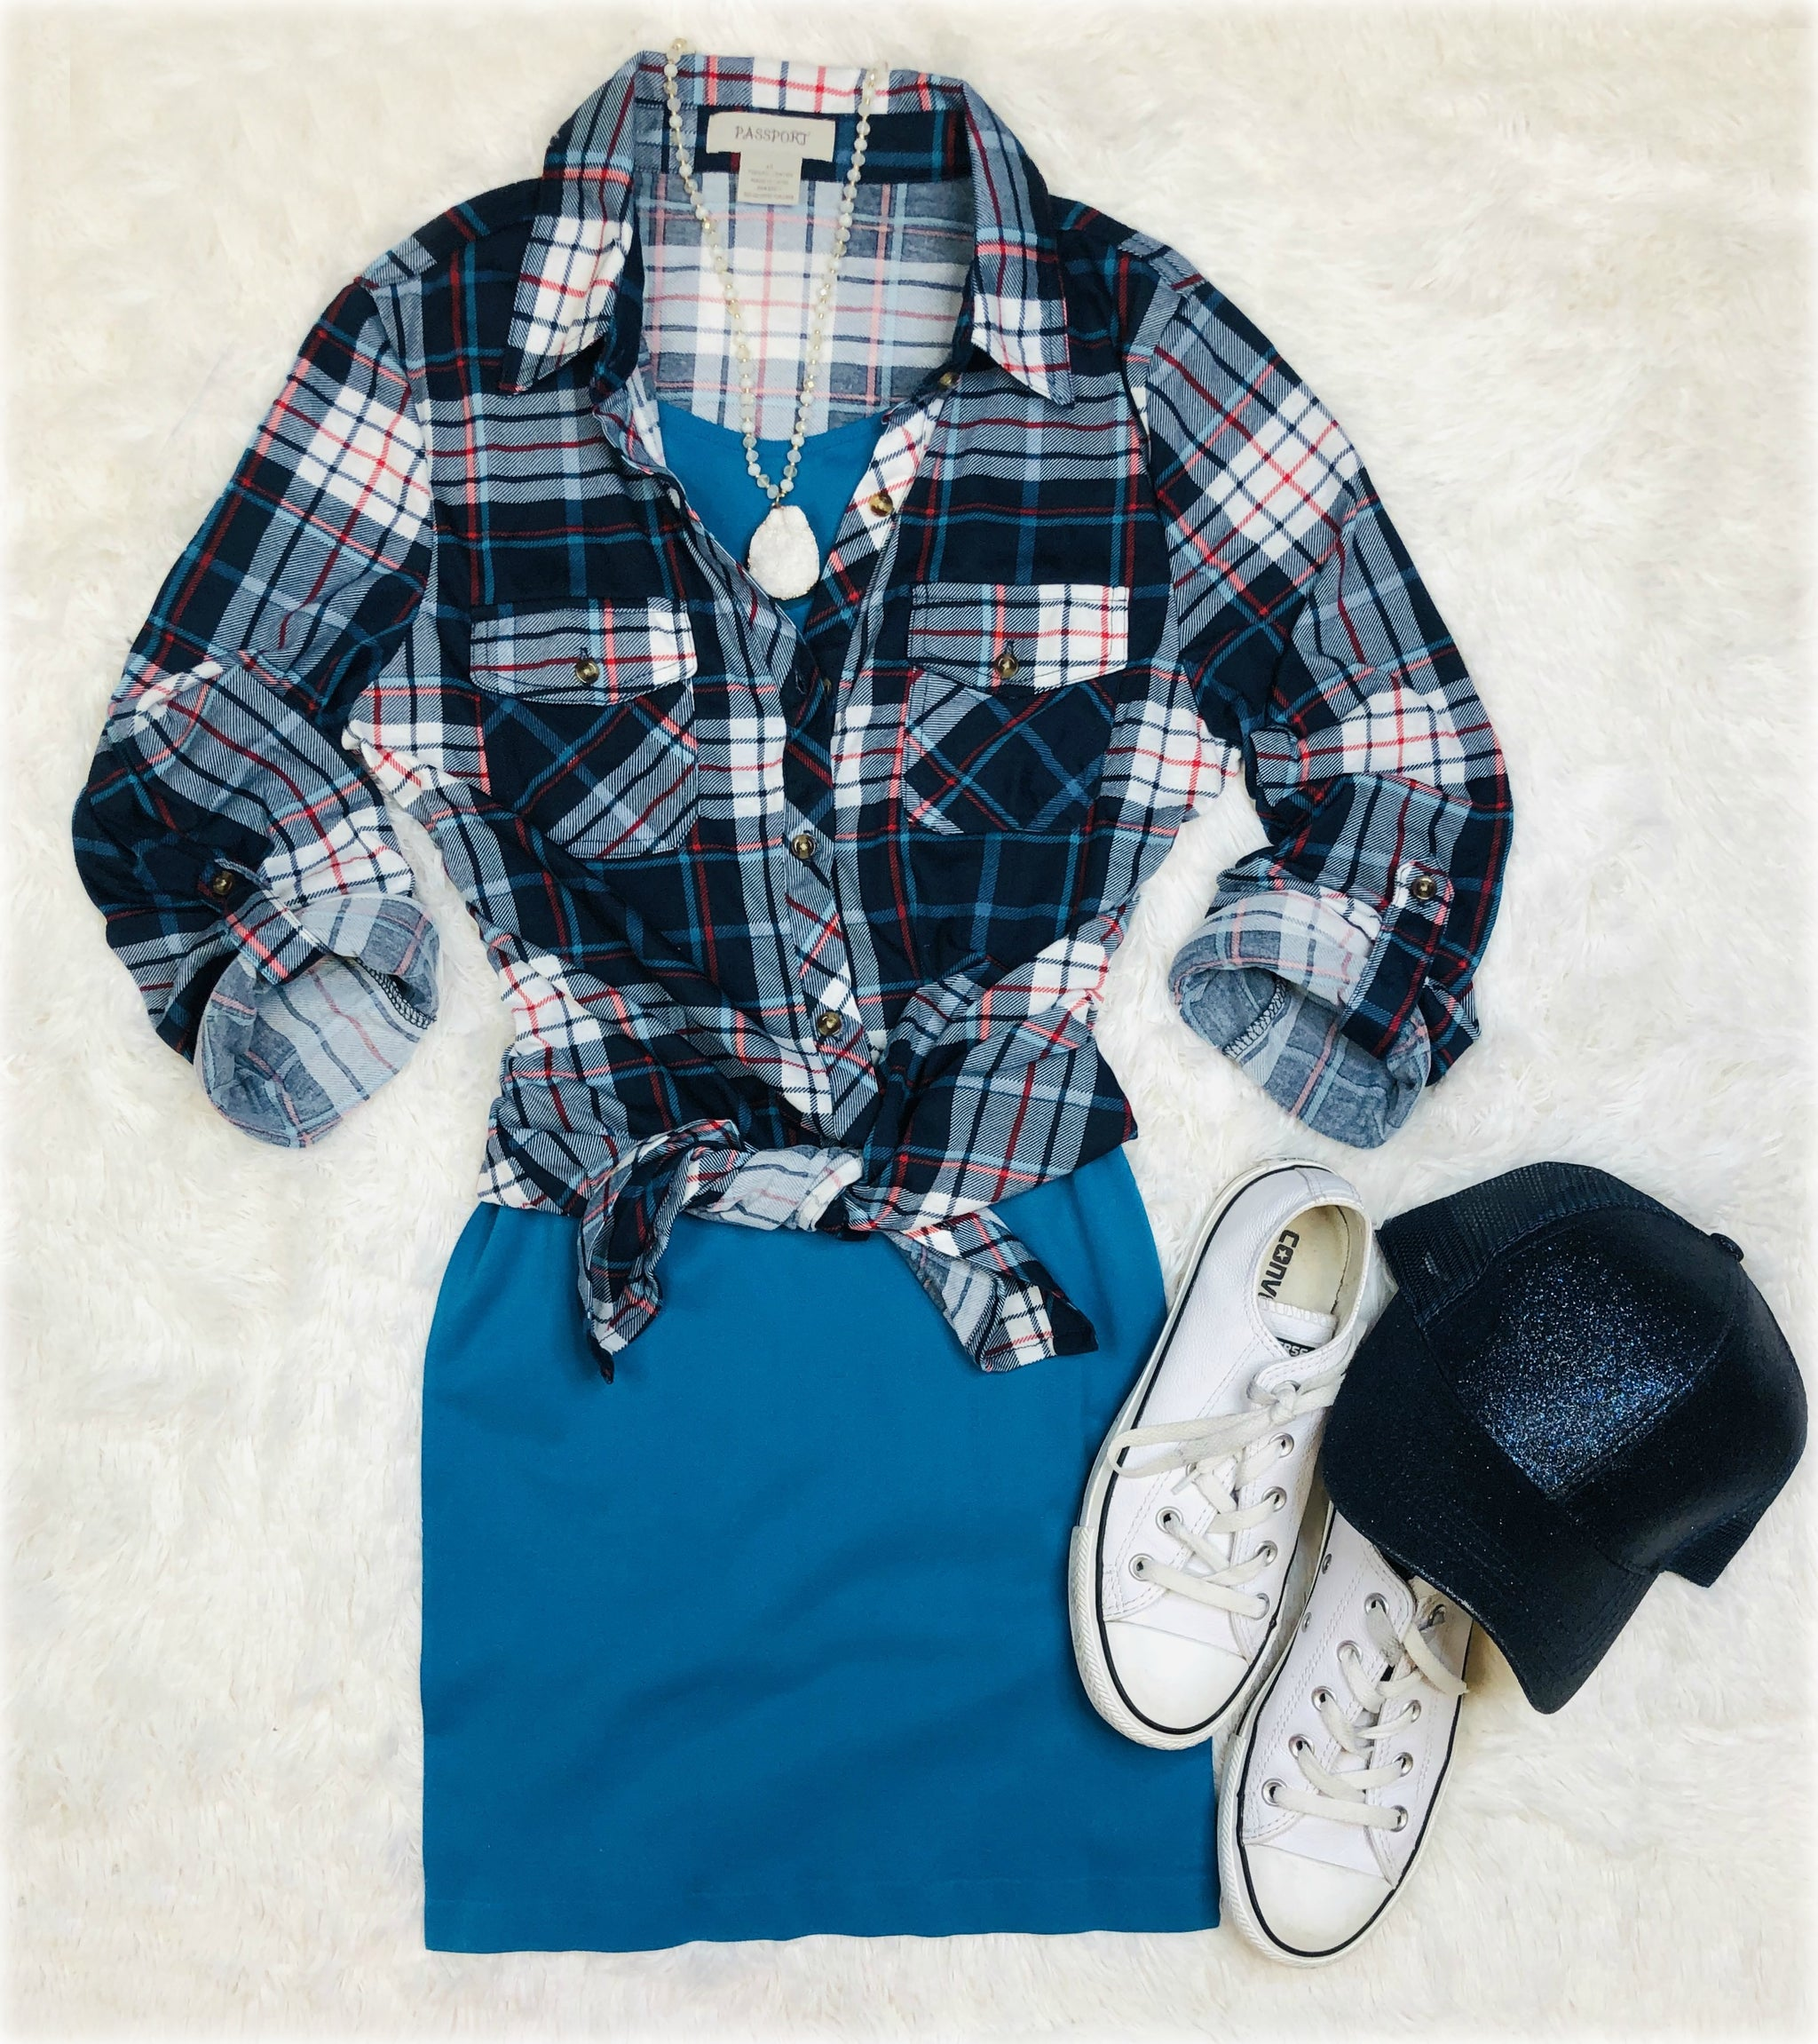 Penny Plaid Flannel Top: Navy/Light Blue/Red